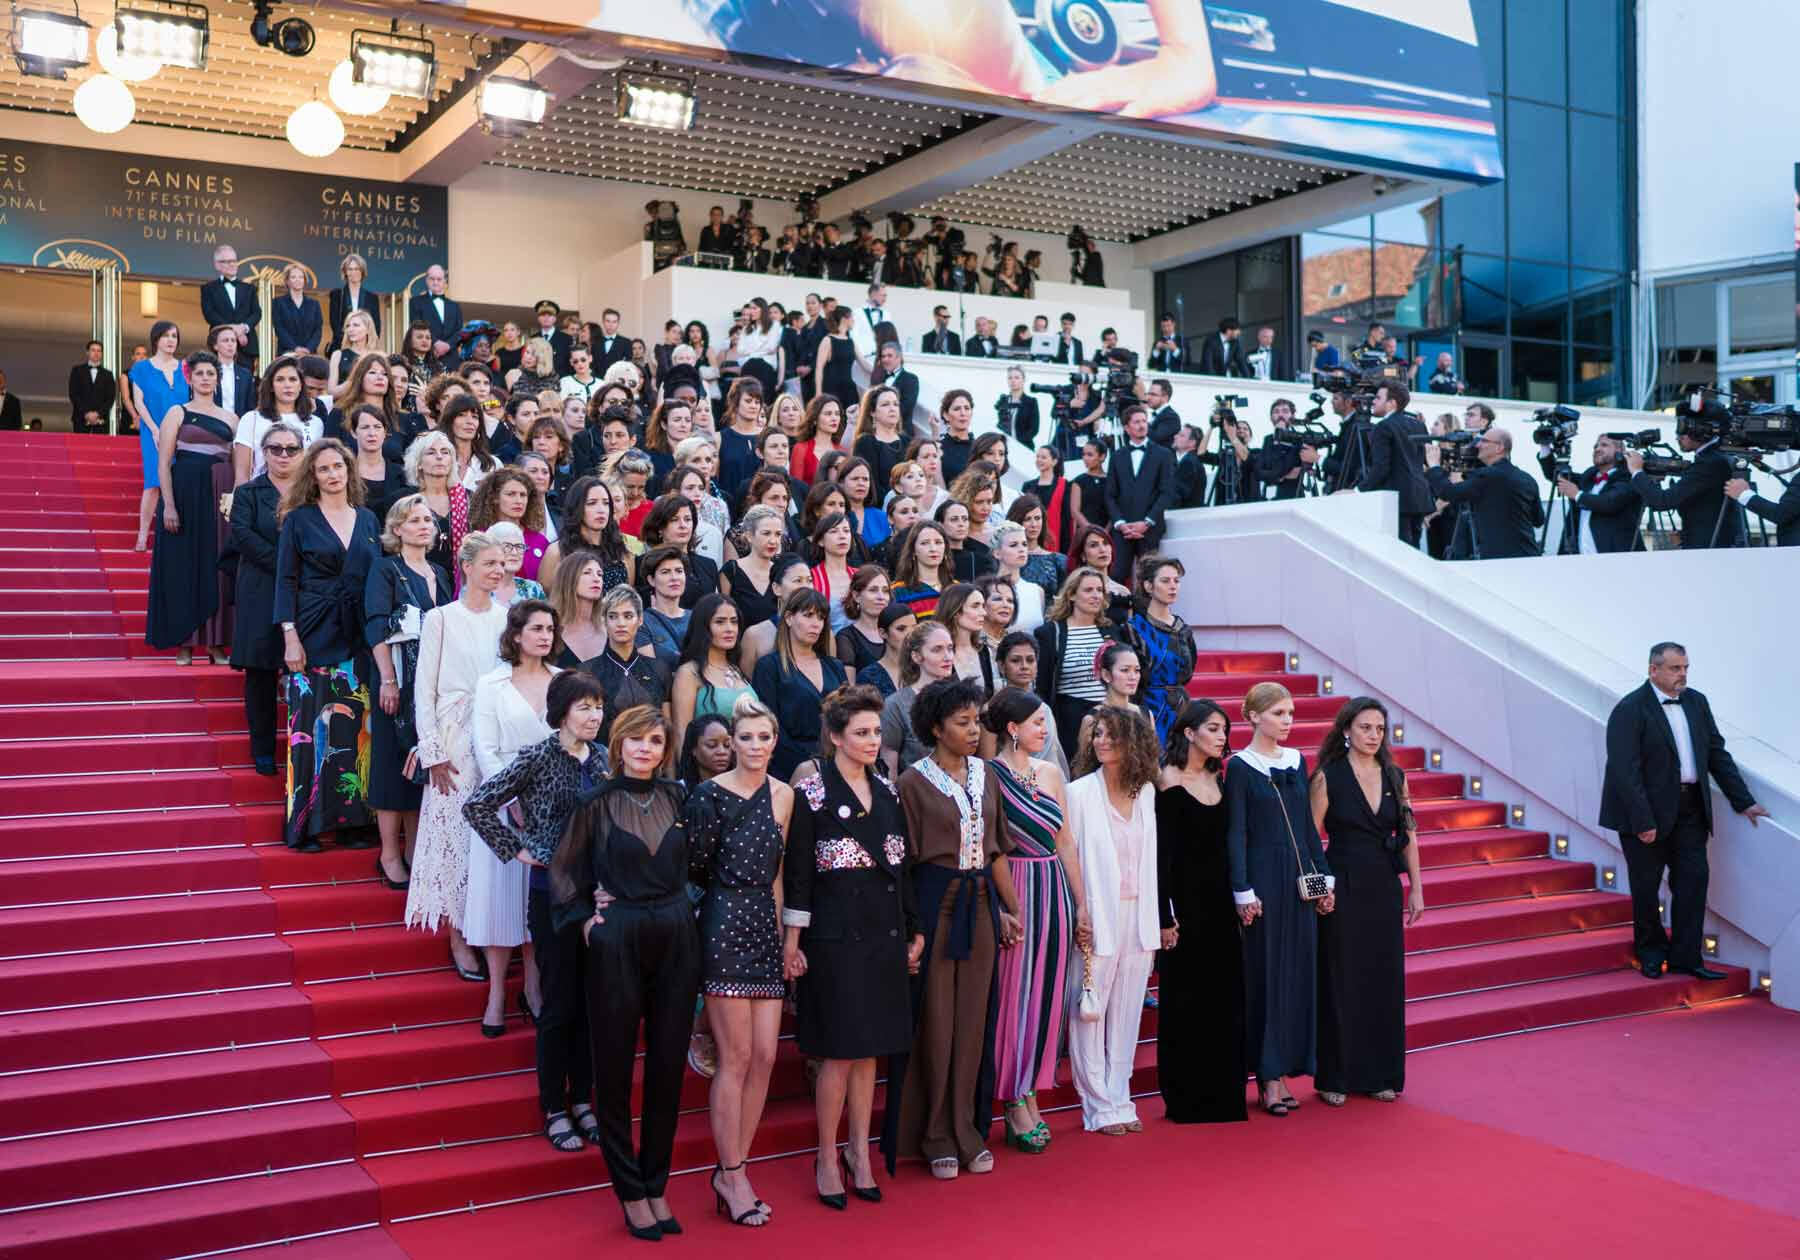 #Metoo protest at Cannes (DO NOT REUSE)